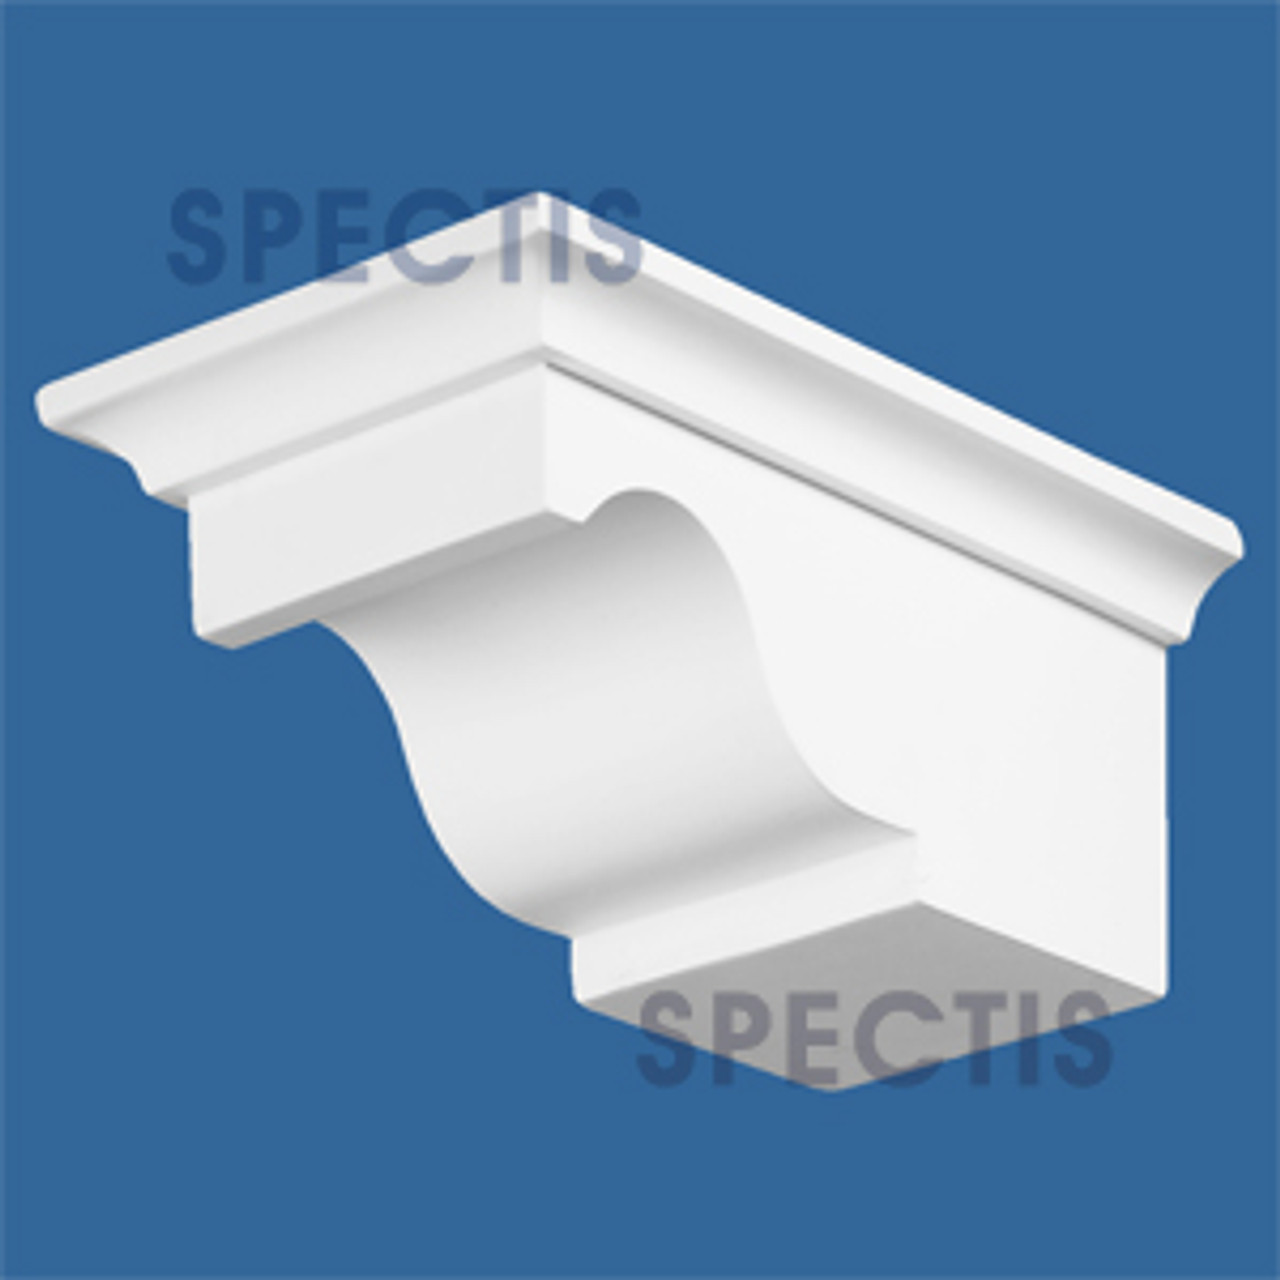 "BL2404R-7/12 Spectis Eave Block or Bracket 5""W x 3.5""H x 7.75"" Projection"